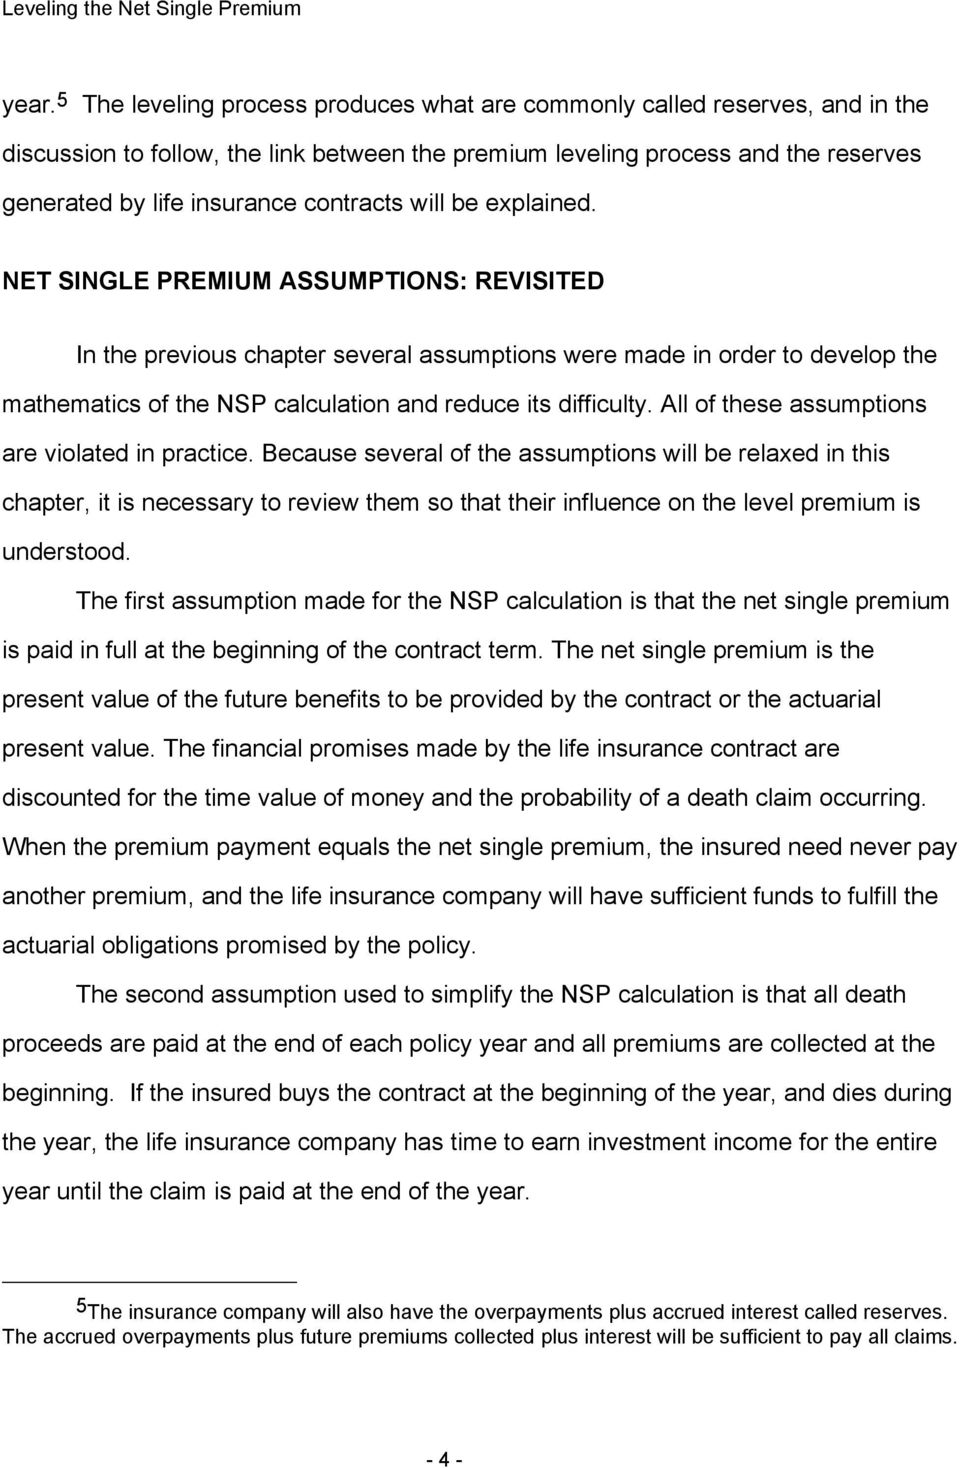 NET SINGLE PREMIUM ASSUMPTIONS: REVISITED In the previous chapter several assumptions were made in order to develop the mathematics of the NSP calculation and reduce its difficulty.